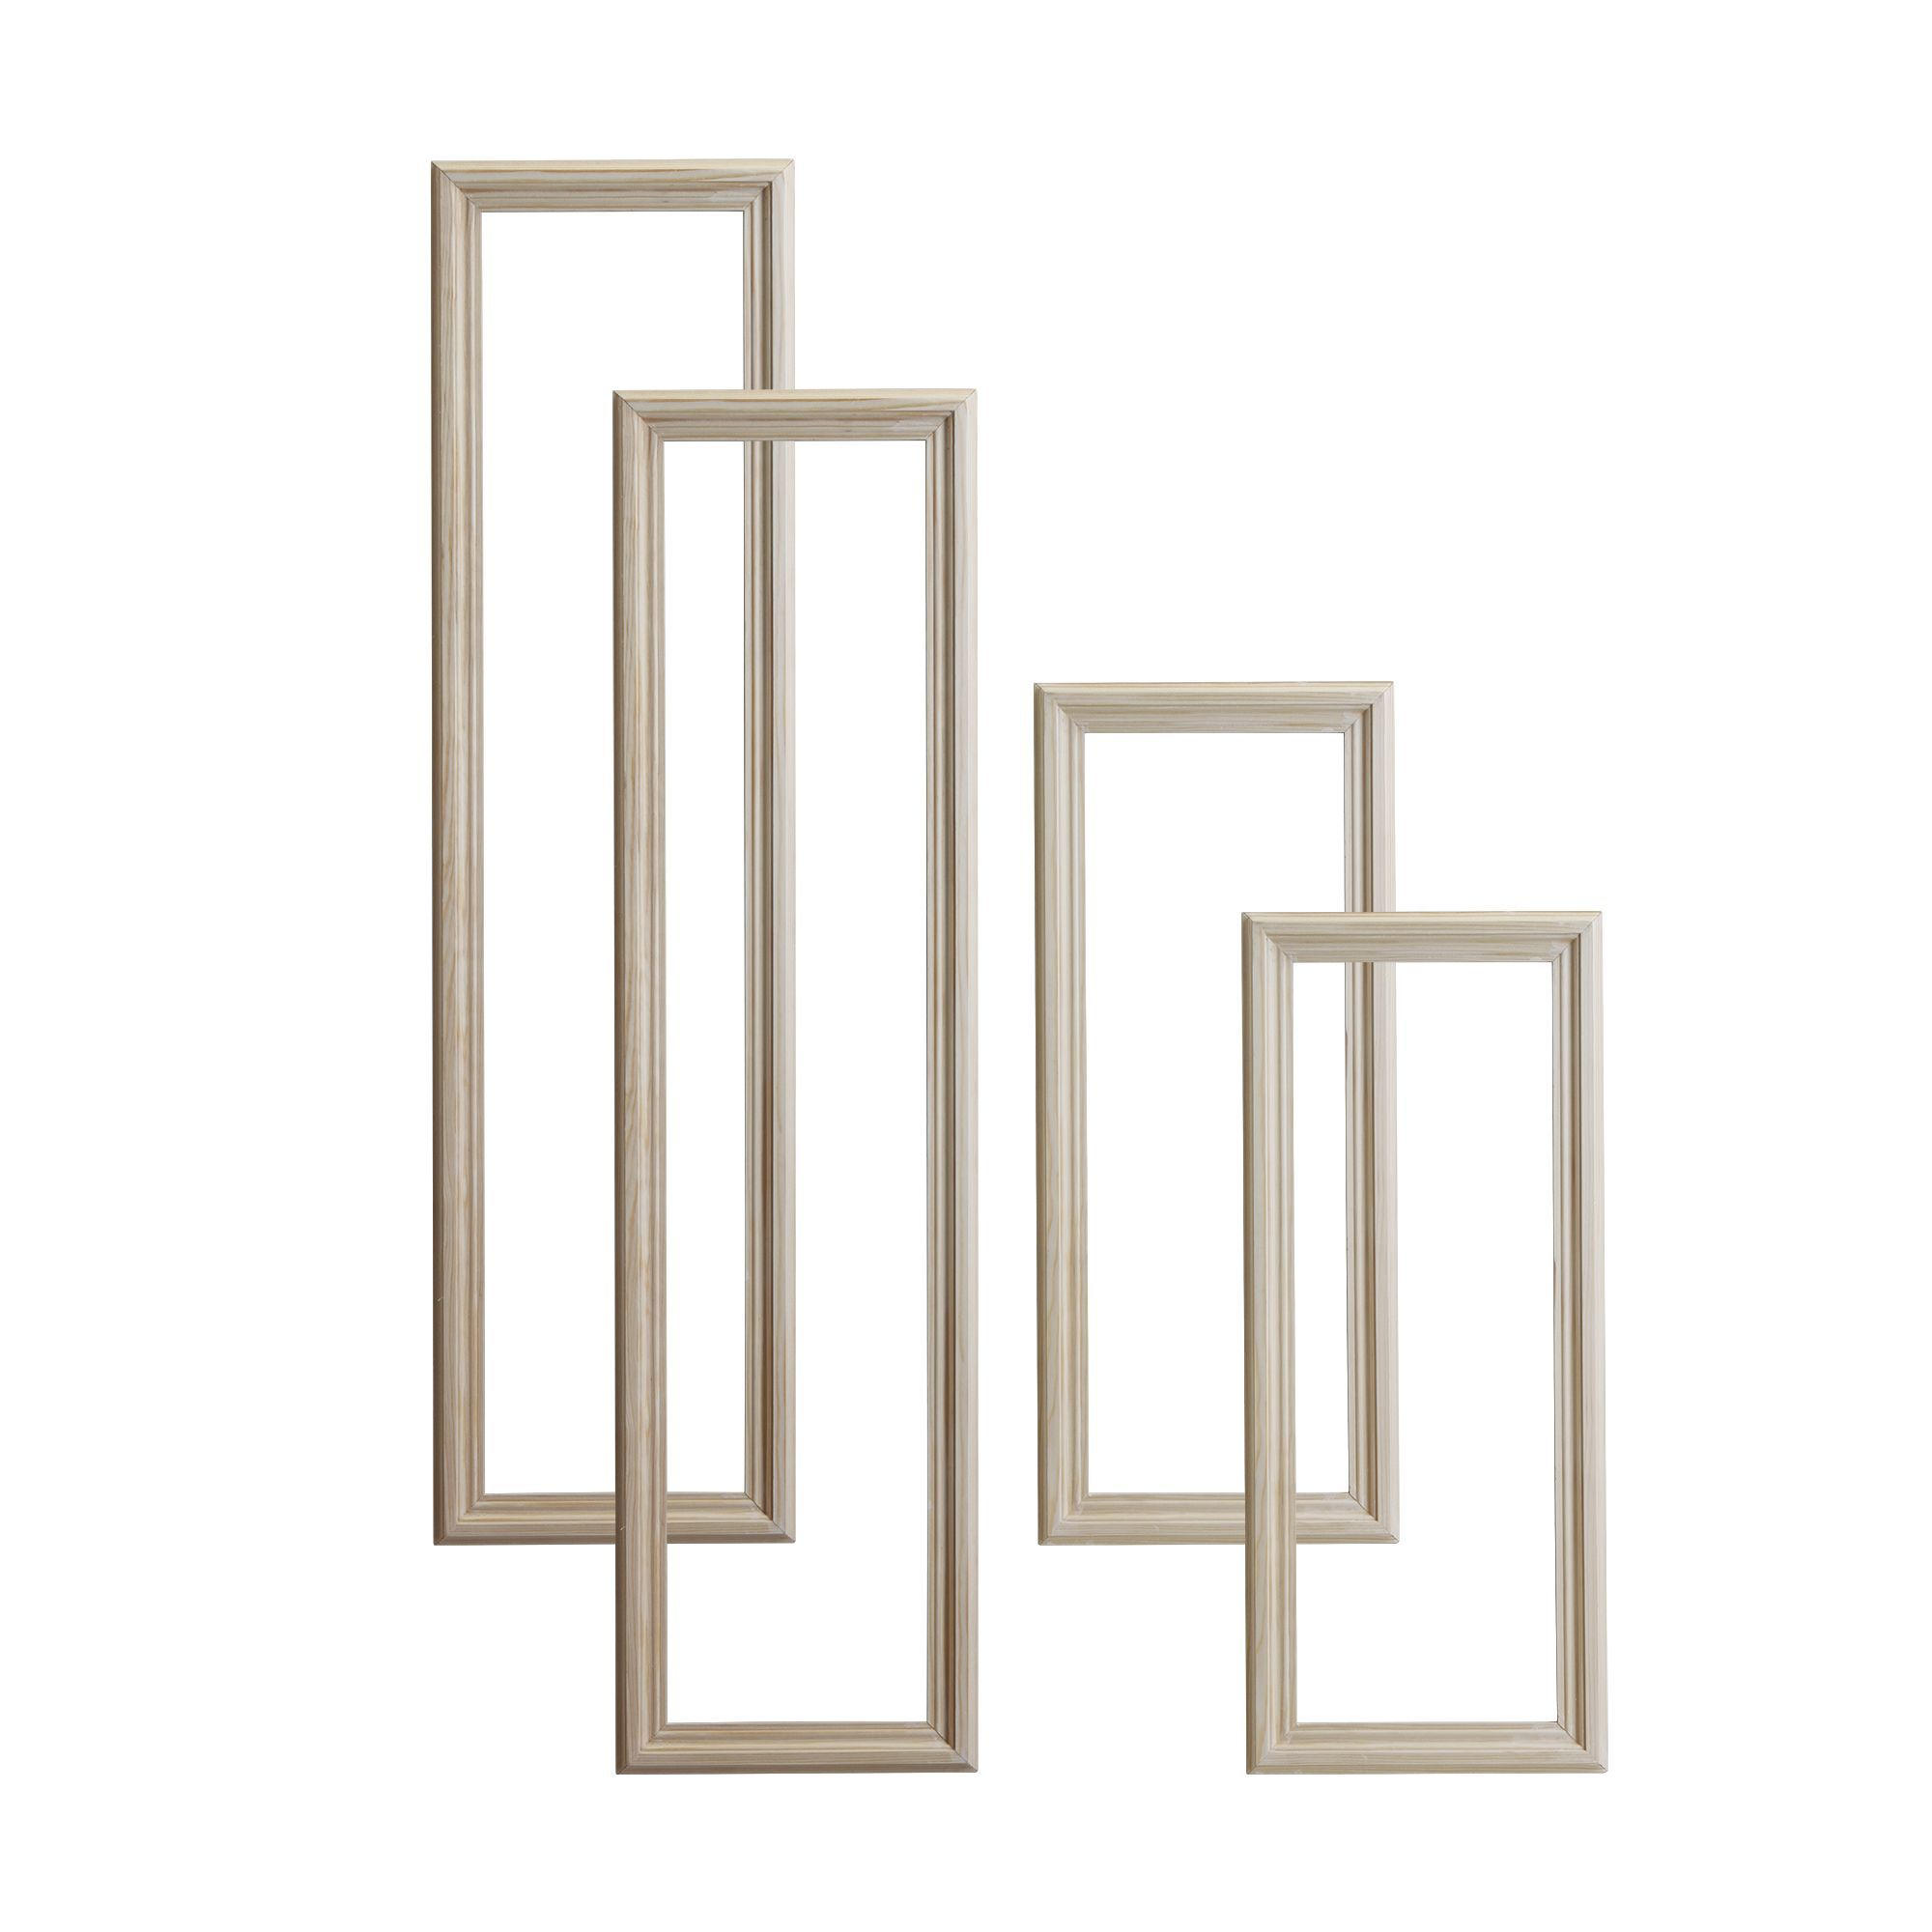 Superb 4 Panel Door Moulding Kit, Pack Of 4 | Departments | DIY At Bu0026Q